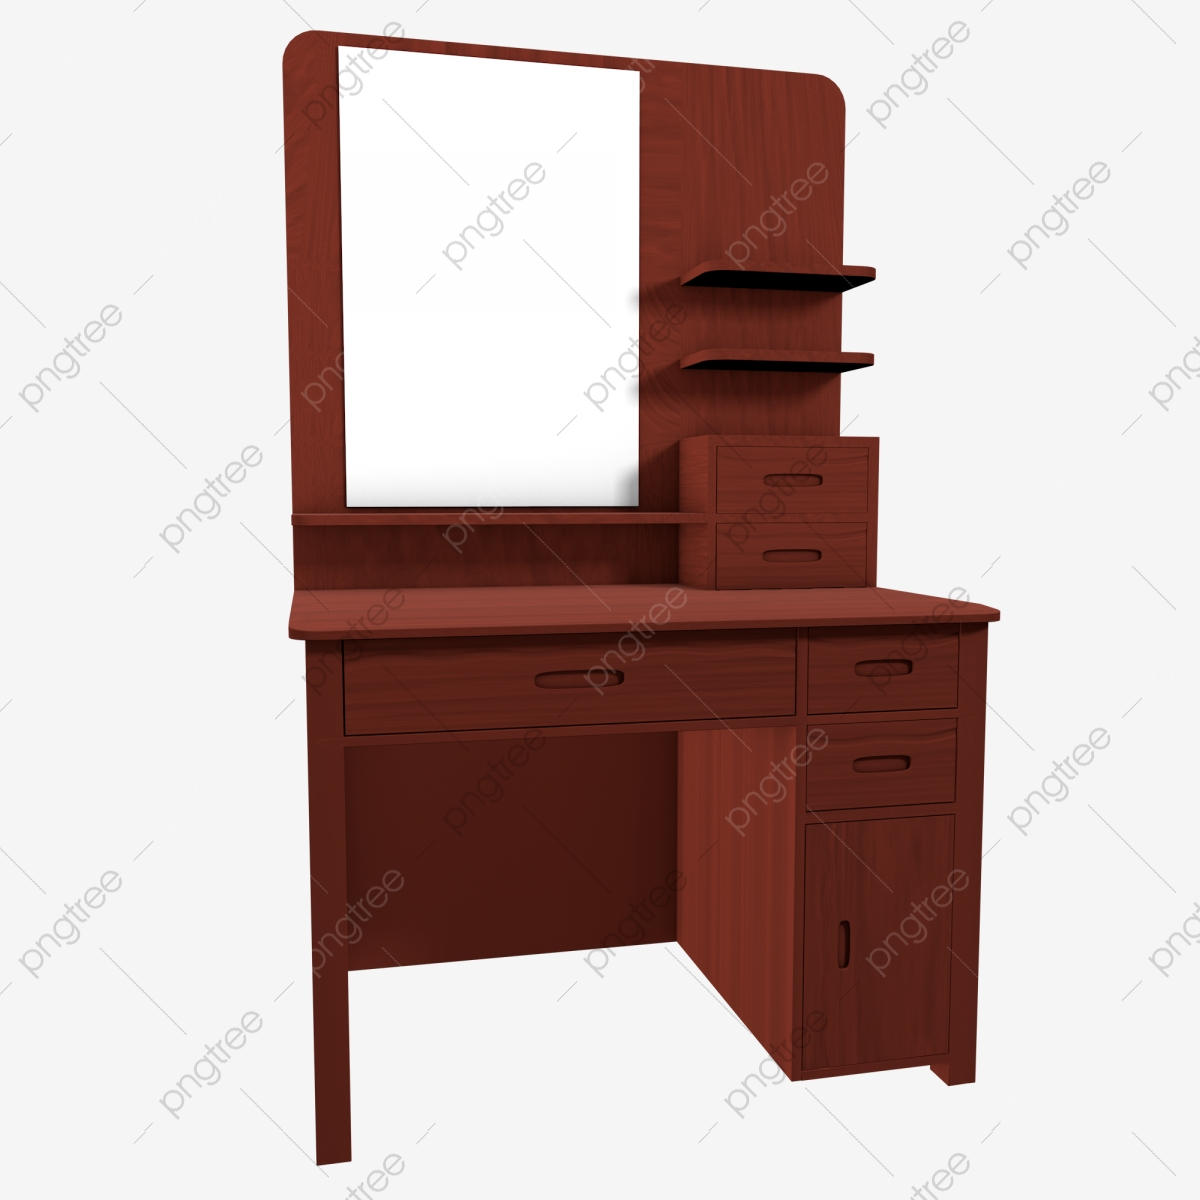 C4d Simulation Physical Dressing Table Furniture Room, C4d ...